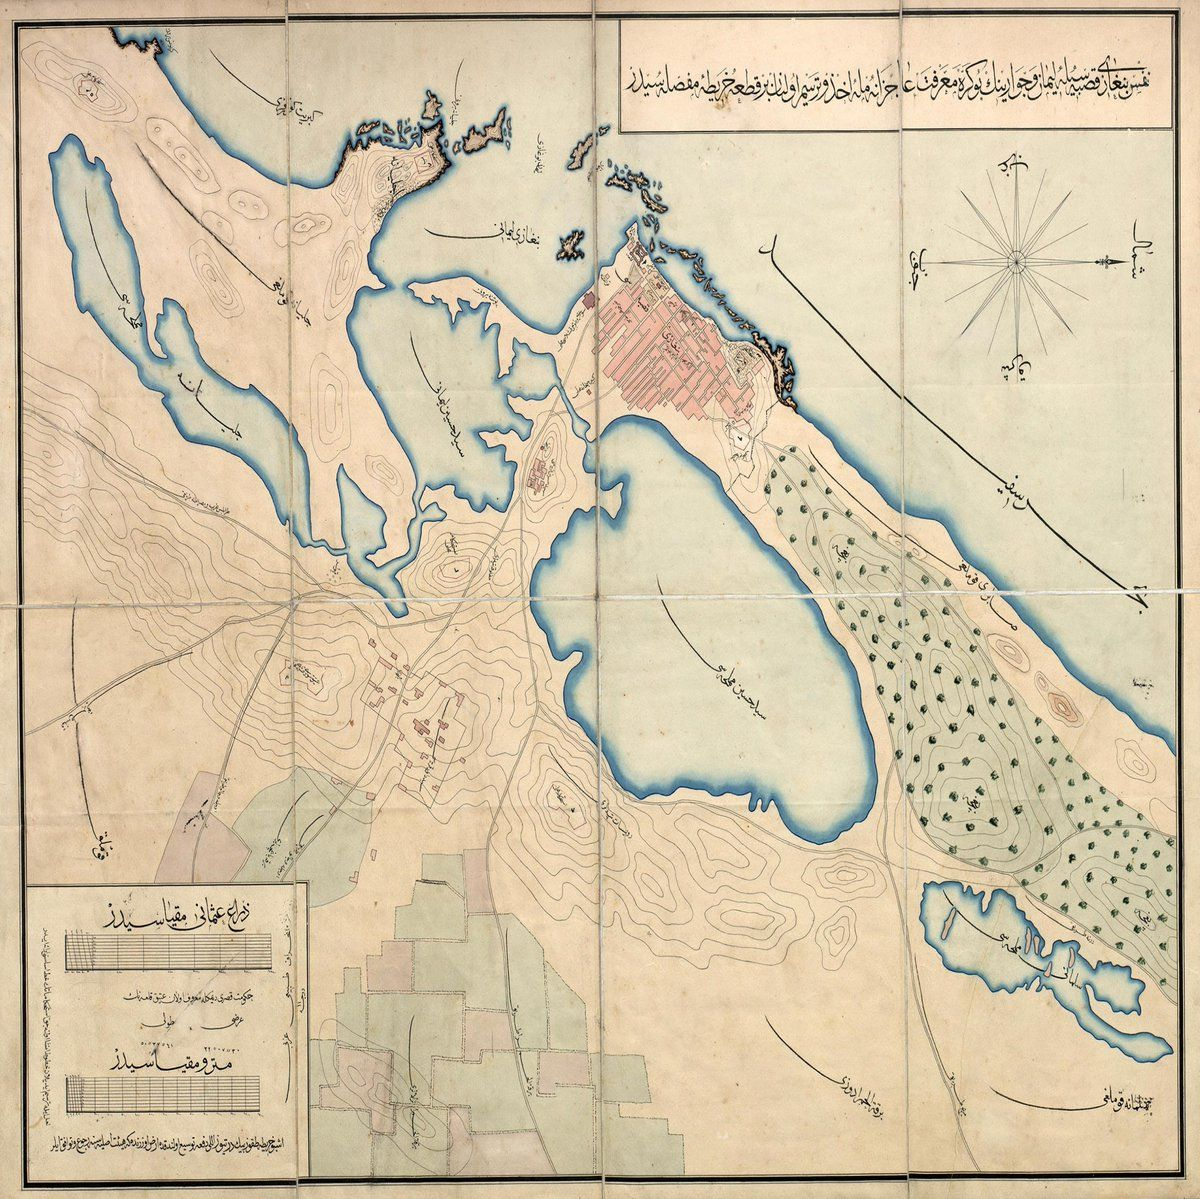 An Ottoman Map of Benghazi Libya Scale 11300 m c1900 Osmanl